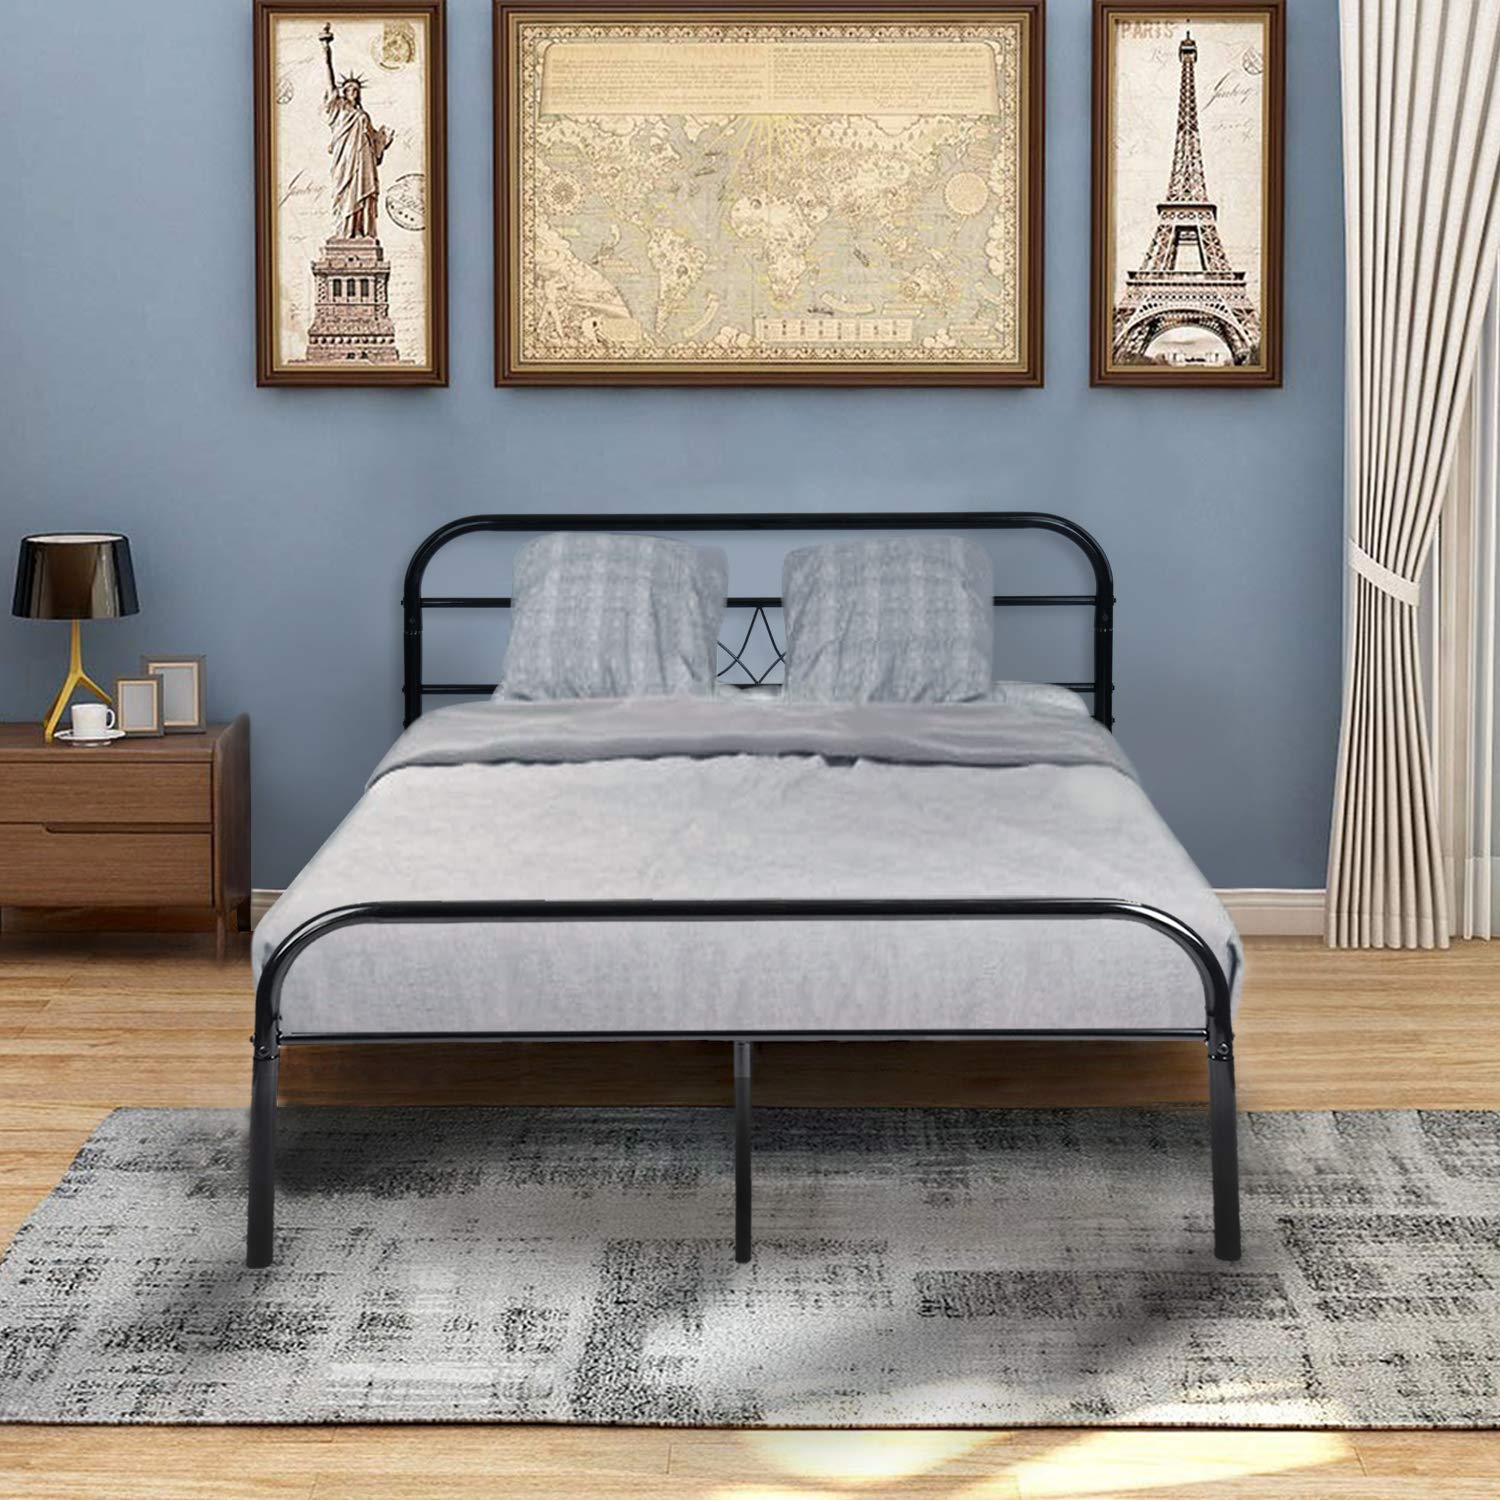 GreenForest Full Bed Frame Metal Platform Double Mattress Base Bed with Headboard No Box Spring Needed, Black